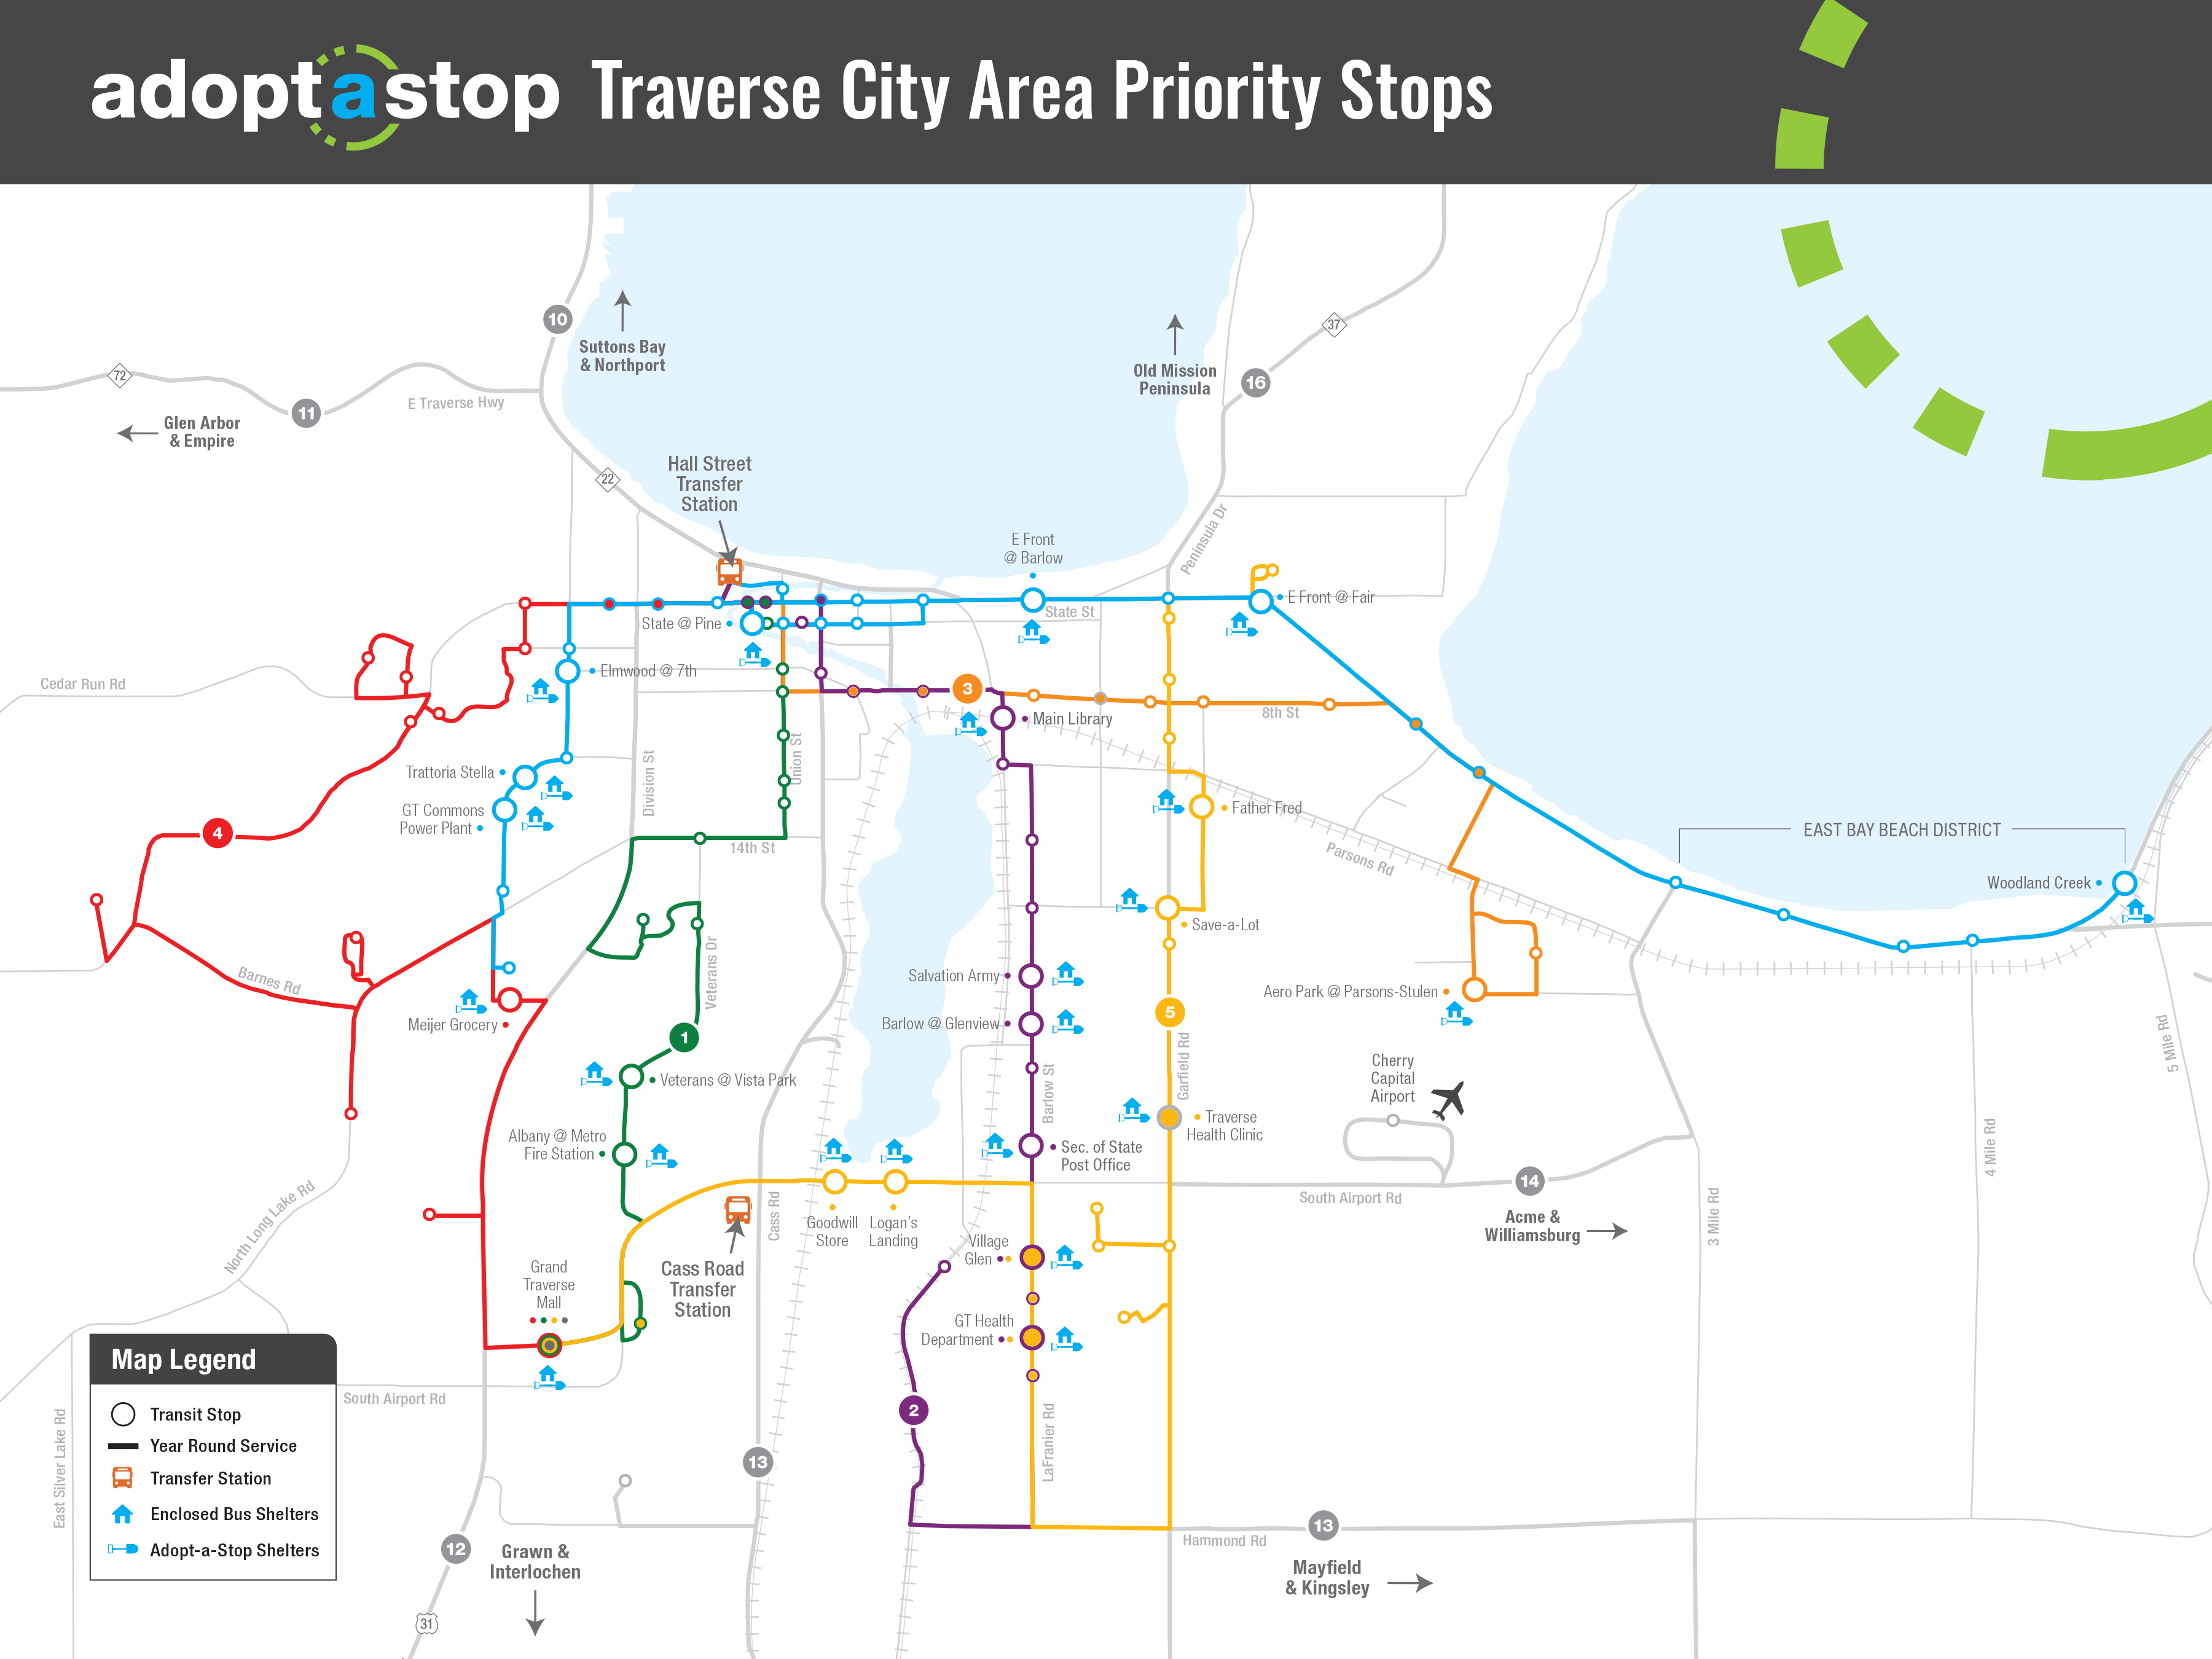 Northern Michigan Bay Area Transportation Authority Adopt a Stop Traverse City Area Priority Stops map